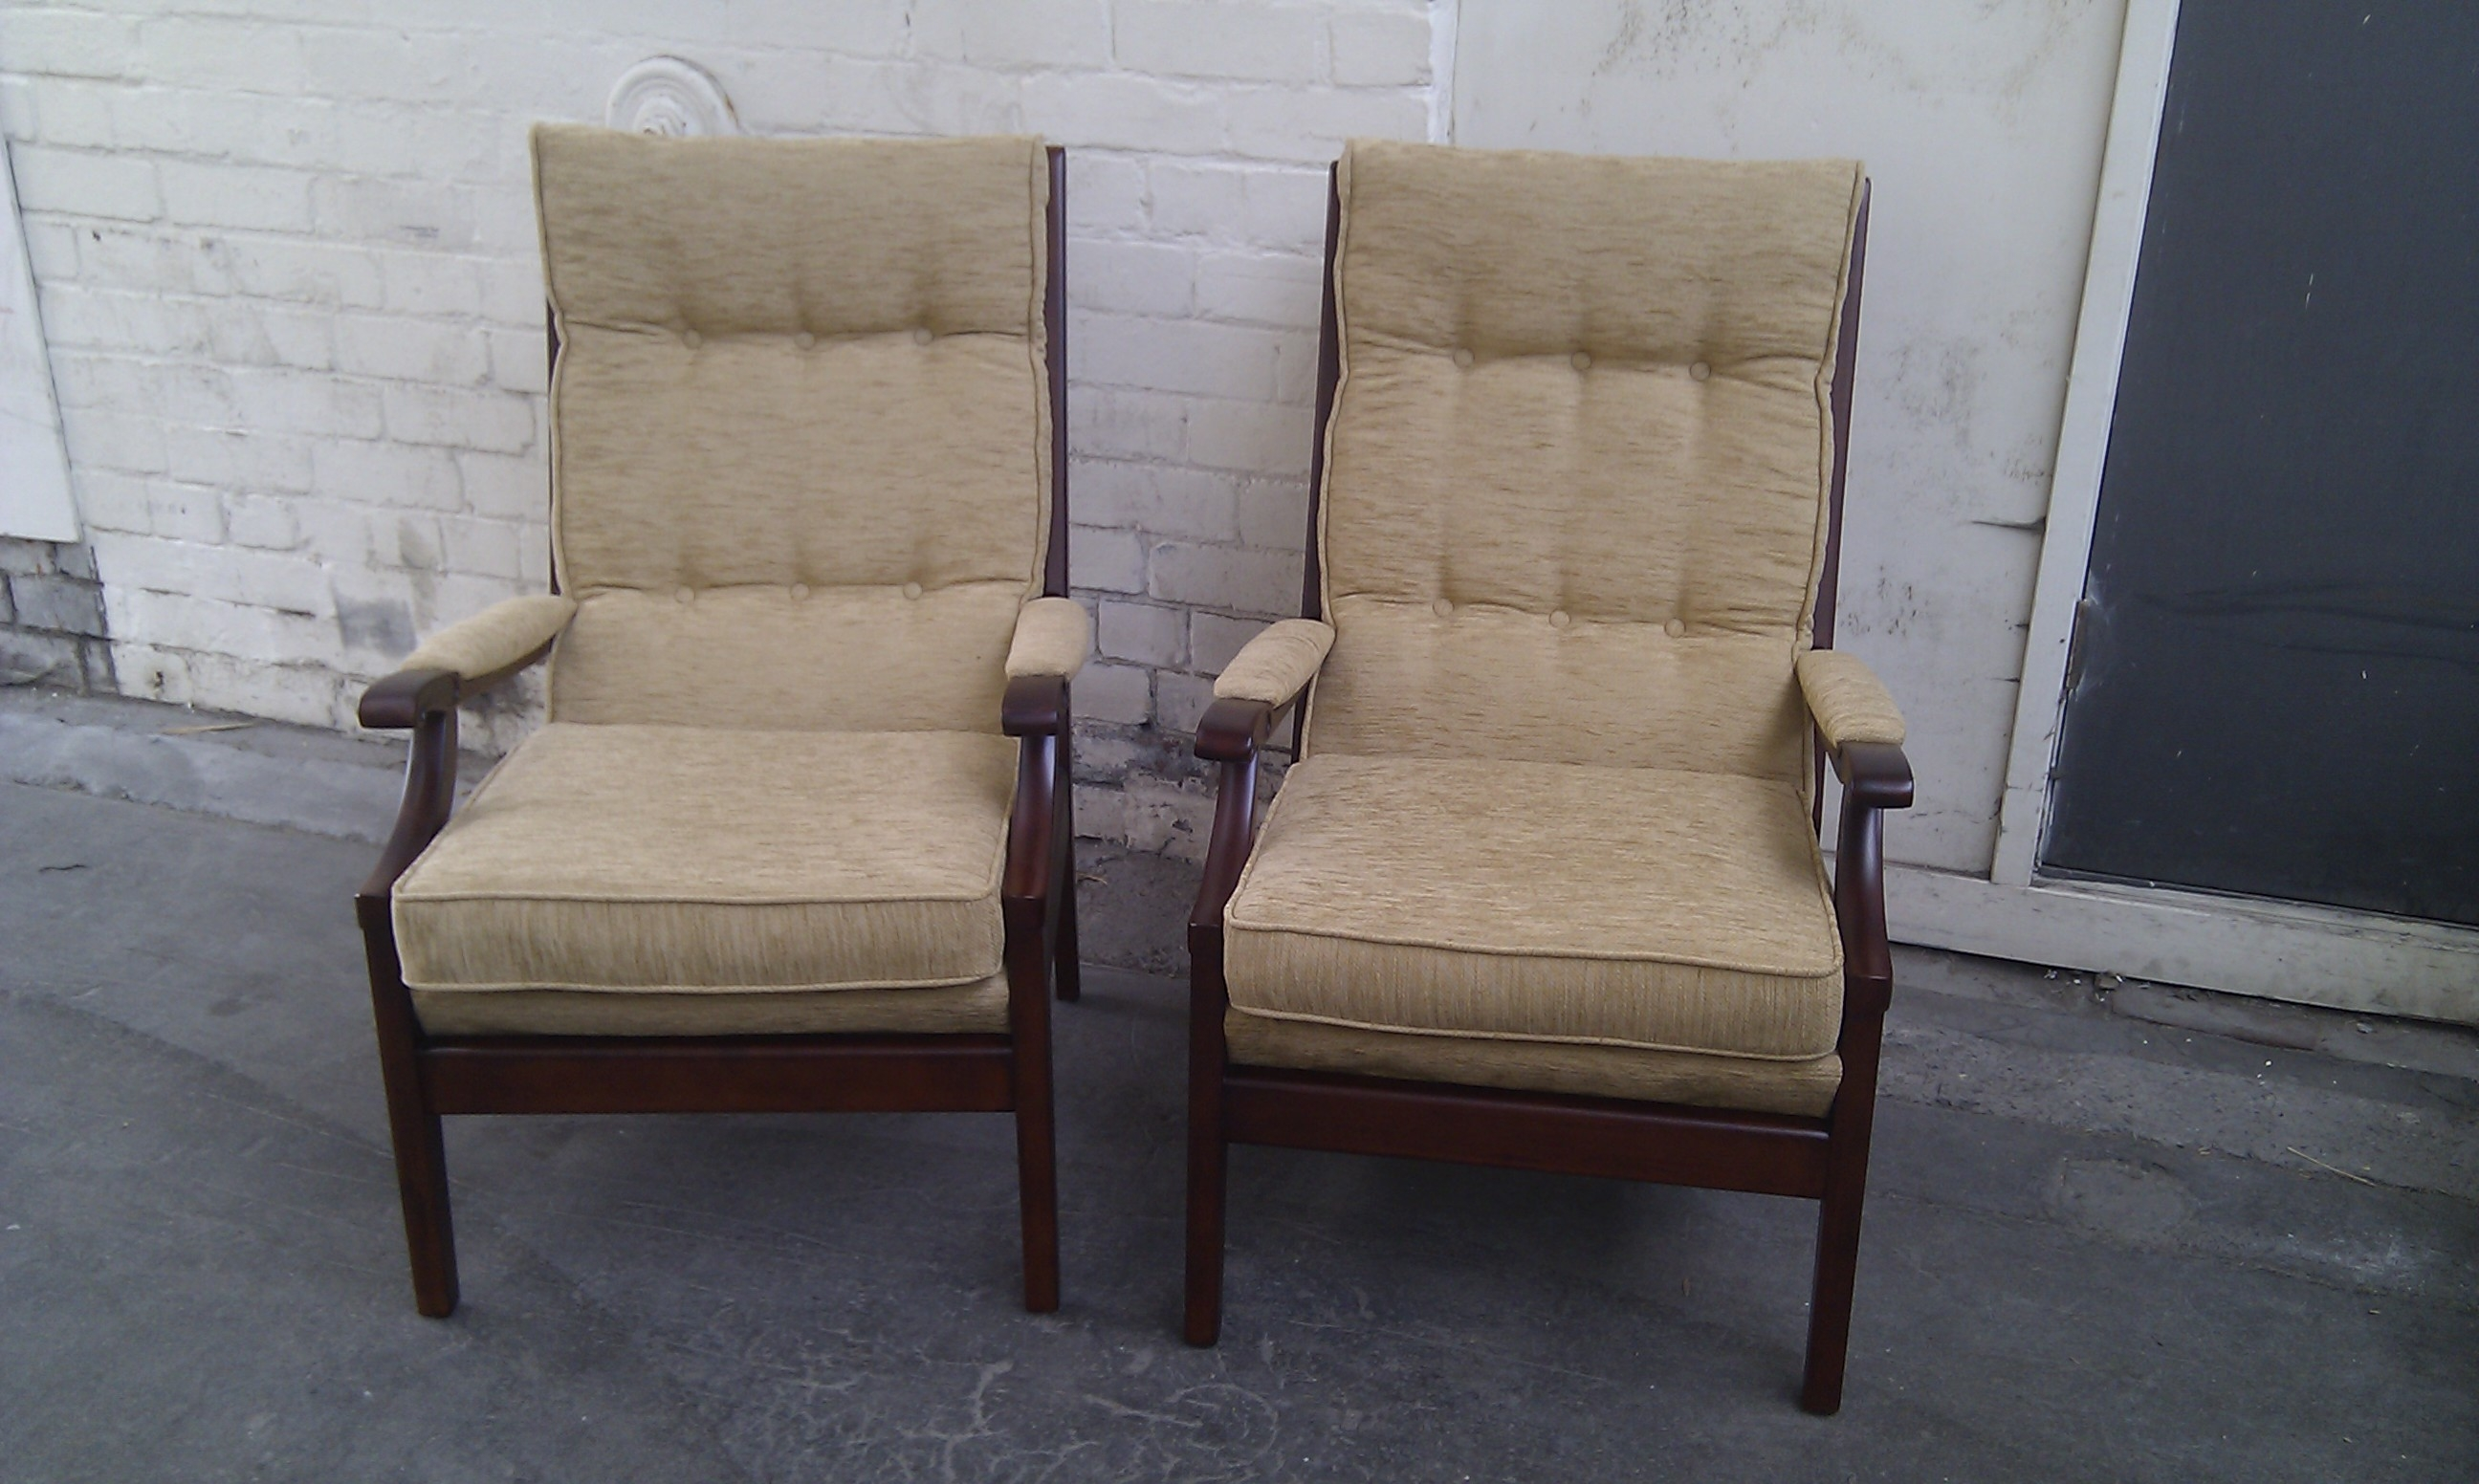 Amazing Elite Cintique Armchairs In Cintique Abbey Upholstery And French Polishing Leeds (View 9 of 15)